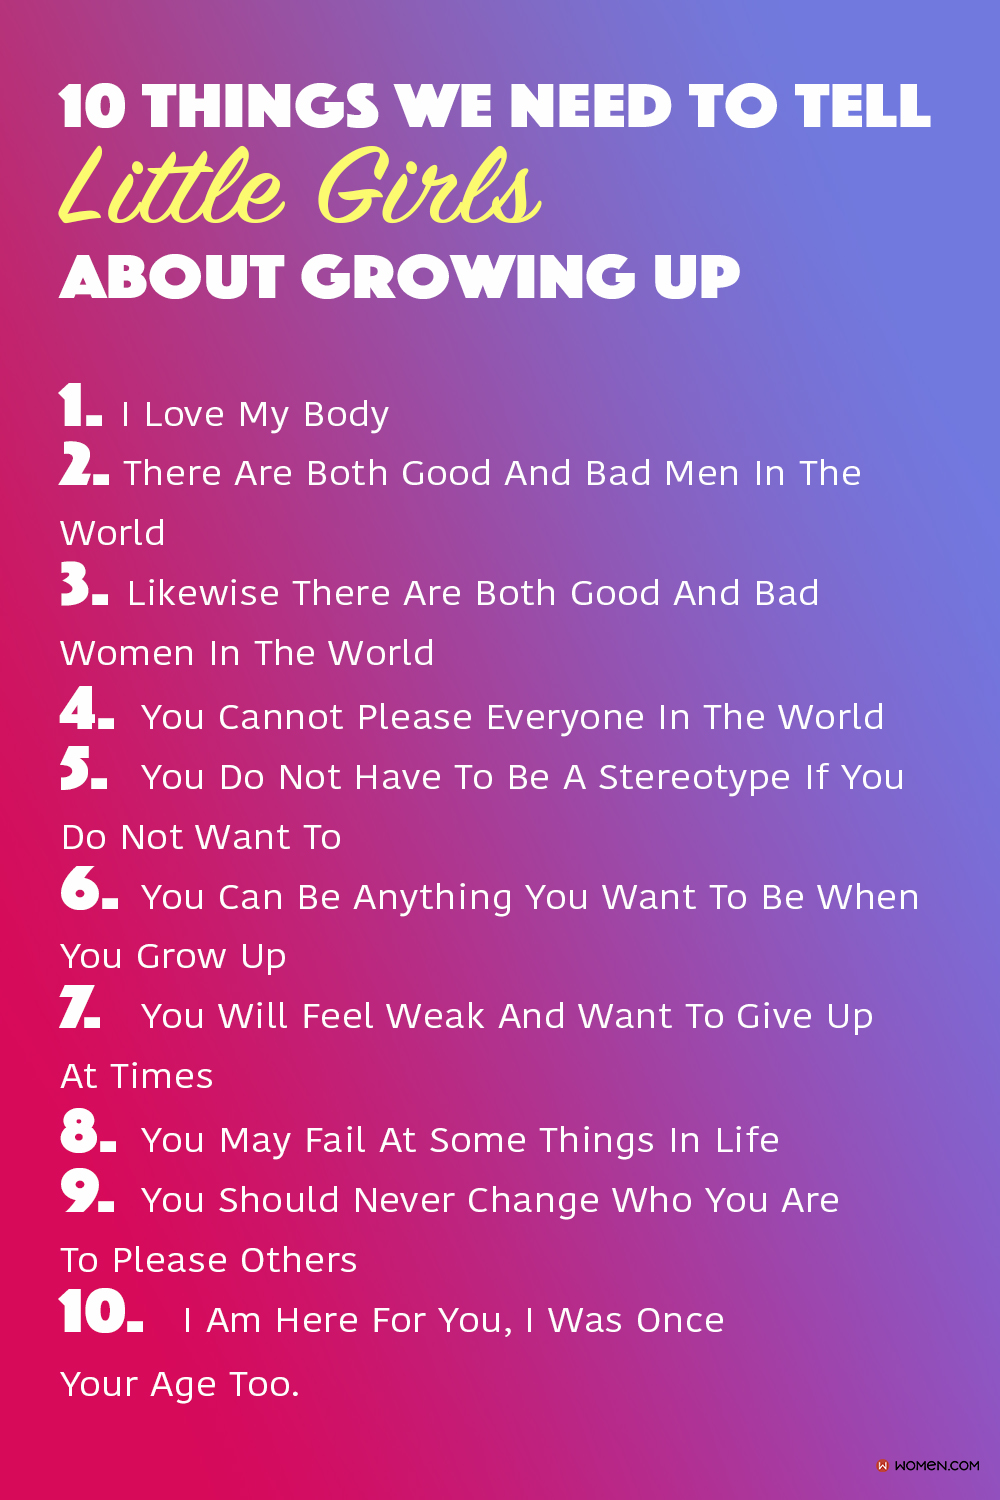 10 Things We Need To Tell Little Girls About Growing Up